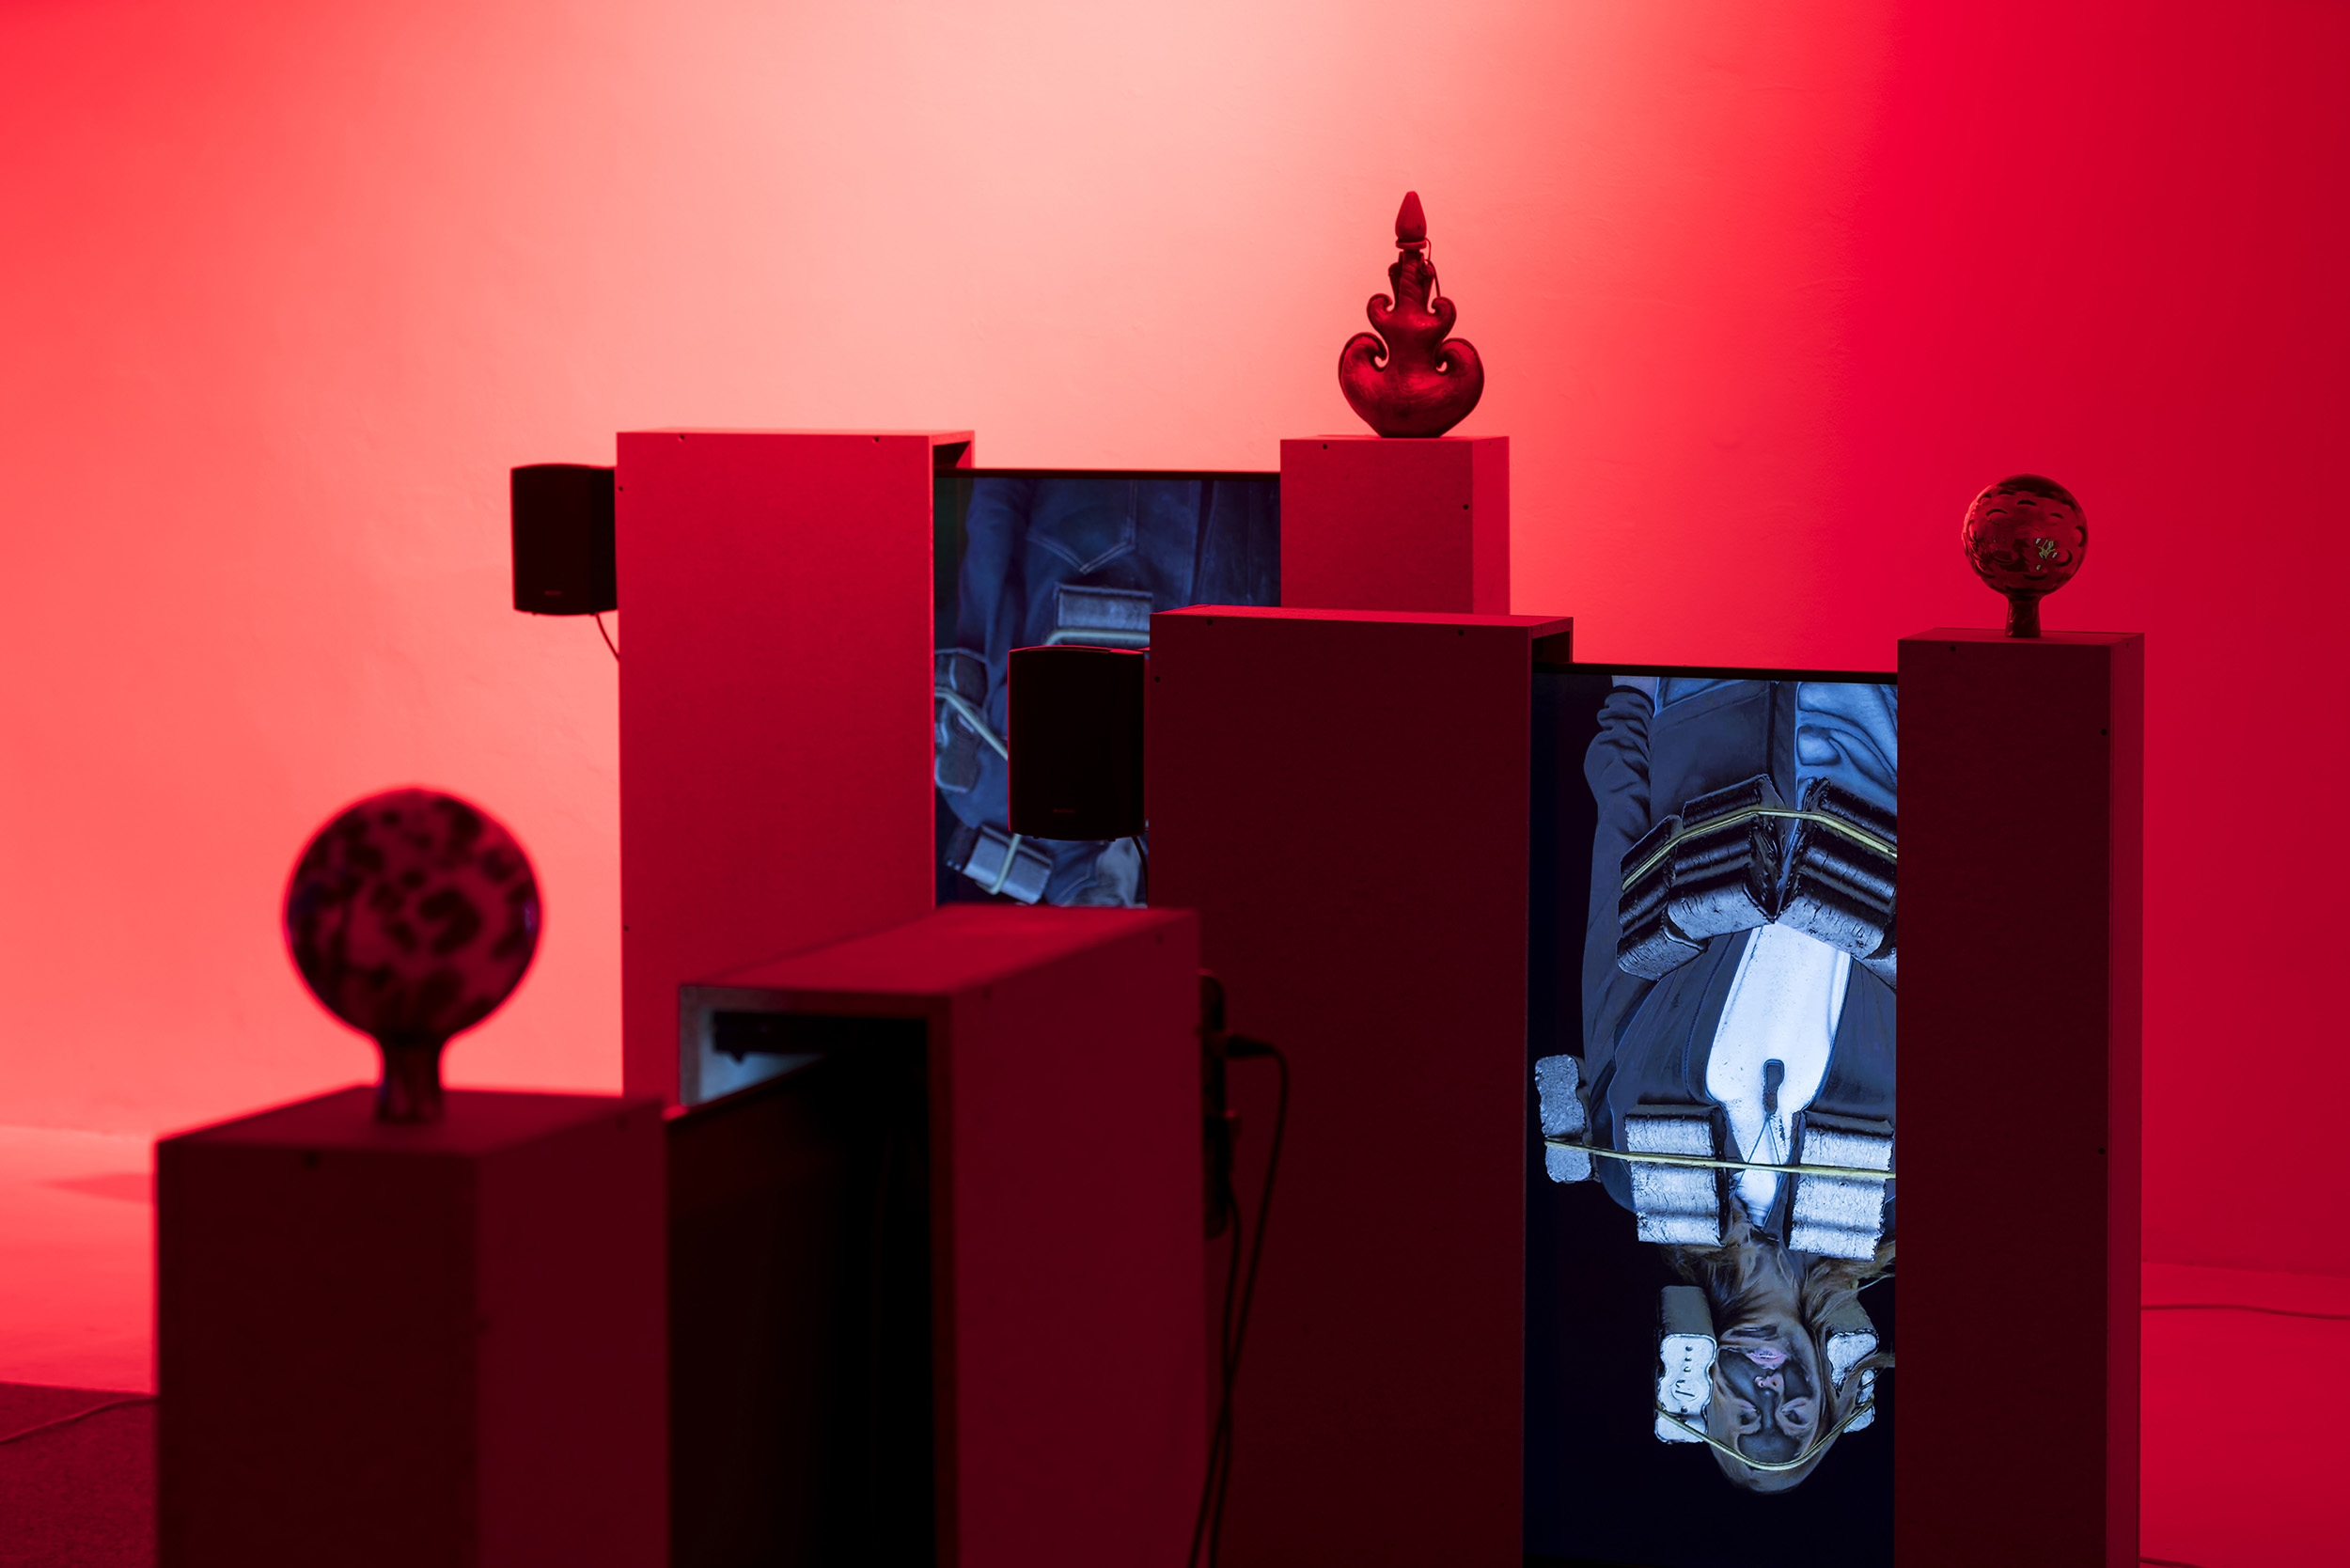 [EN] 'Spiritualities: Three Contemporary Portrayals of Transcendence and Beliefs' at Meetfactory